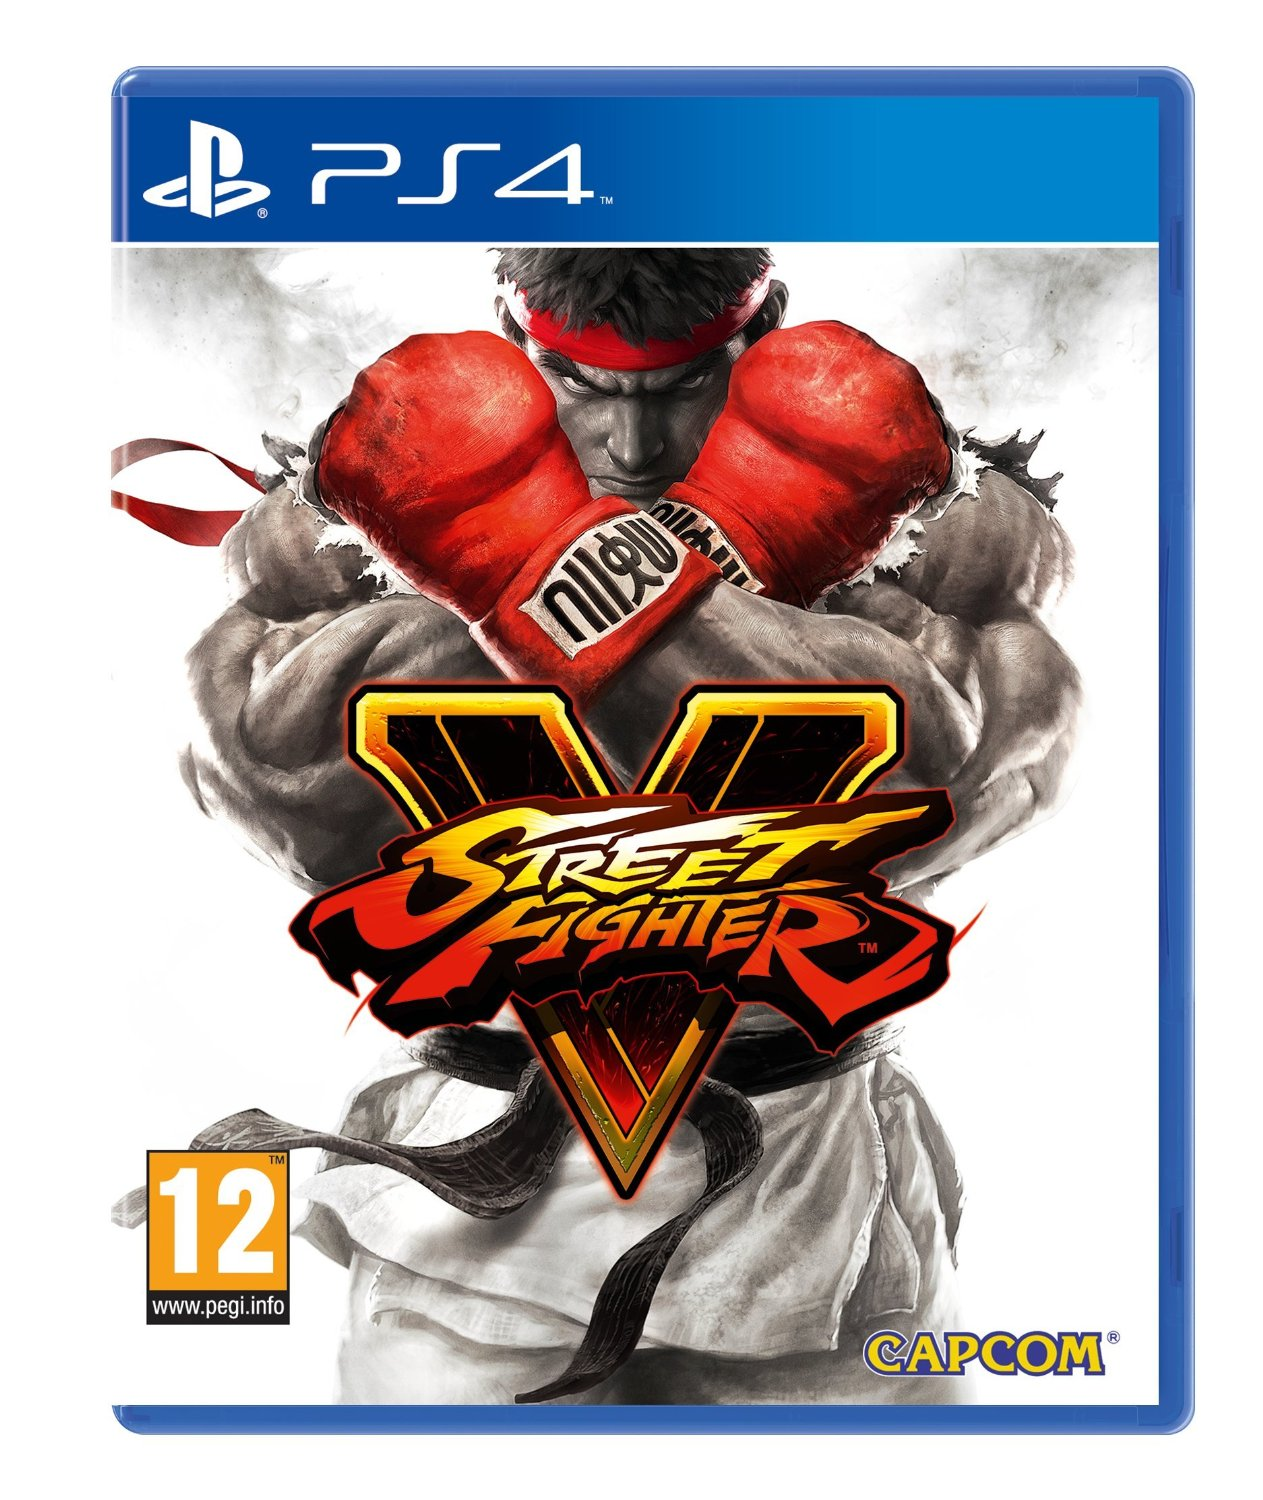 New Fighting Games For Ps4 : Street fighter sony ps steelbook limited edition